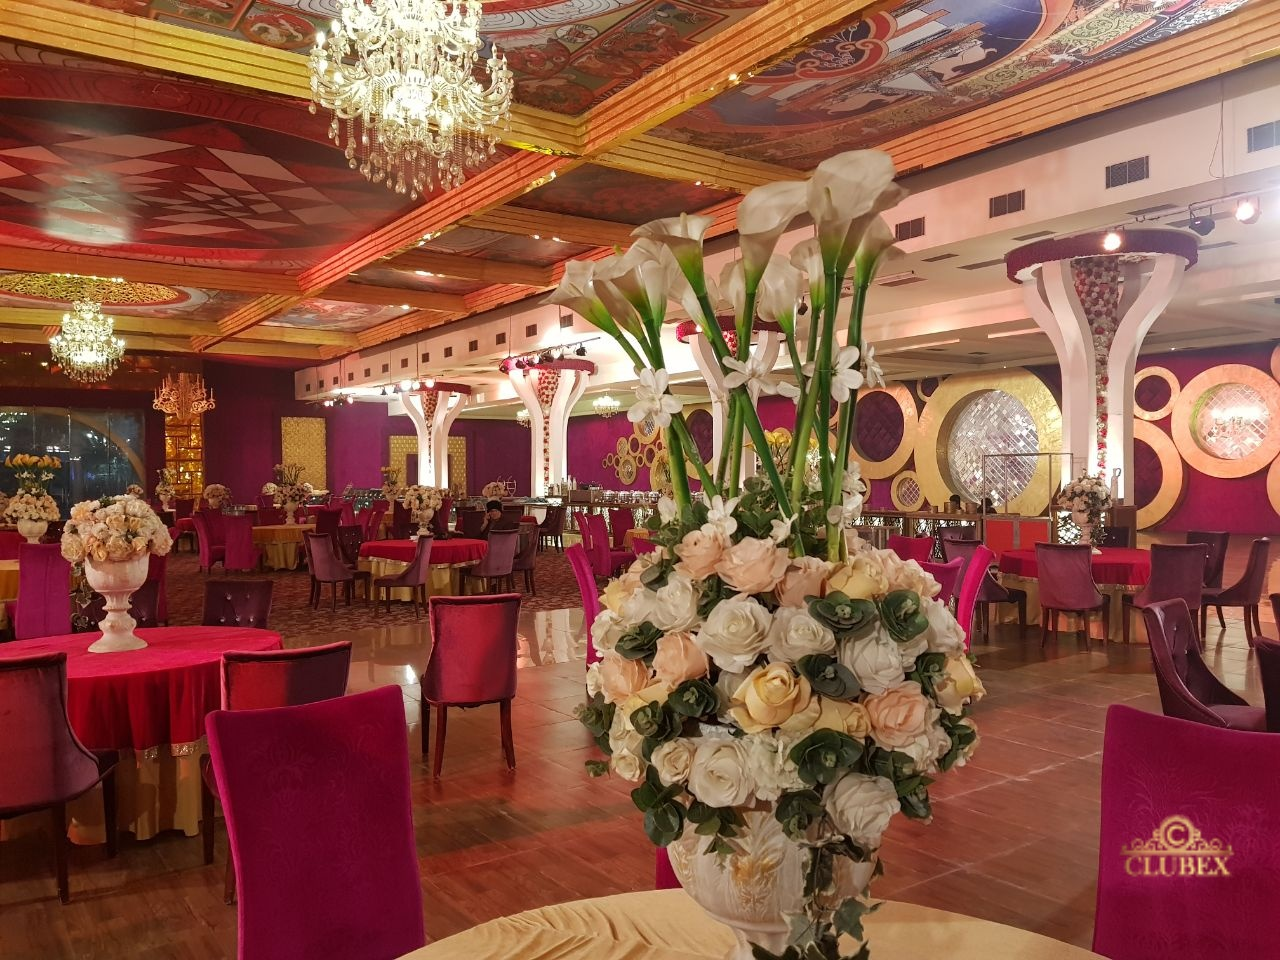 caterers in delhi , ,wedding catering services ,catering service in delhi gurgaon ,catering services in noida ,caterers in east delhi ,outdoor catering services in delhi